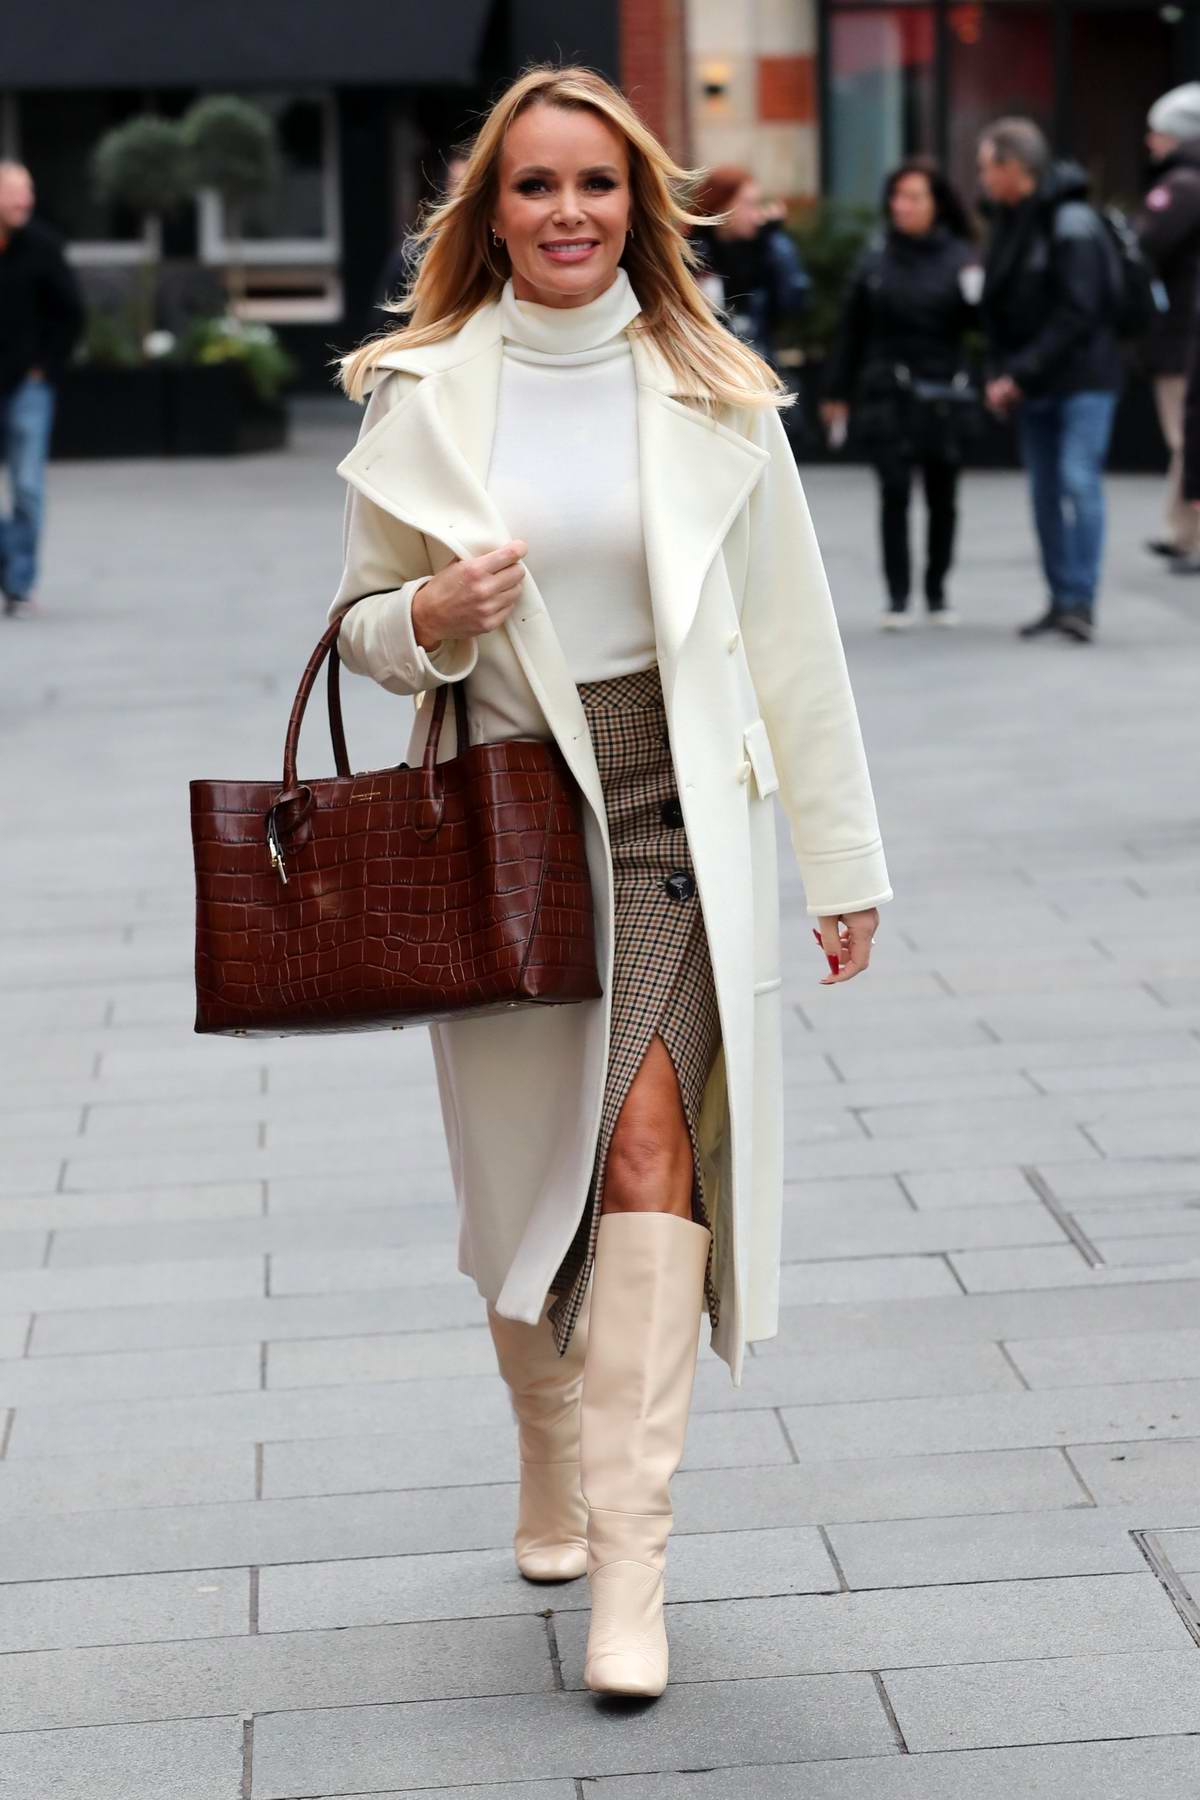 Amanda Holden looks stylish in gingham pattern skirt with a white top as she Leaving Heart Radio in London, UK